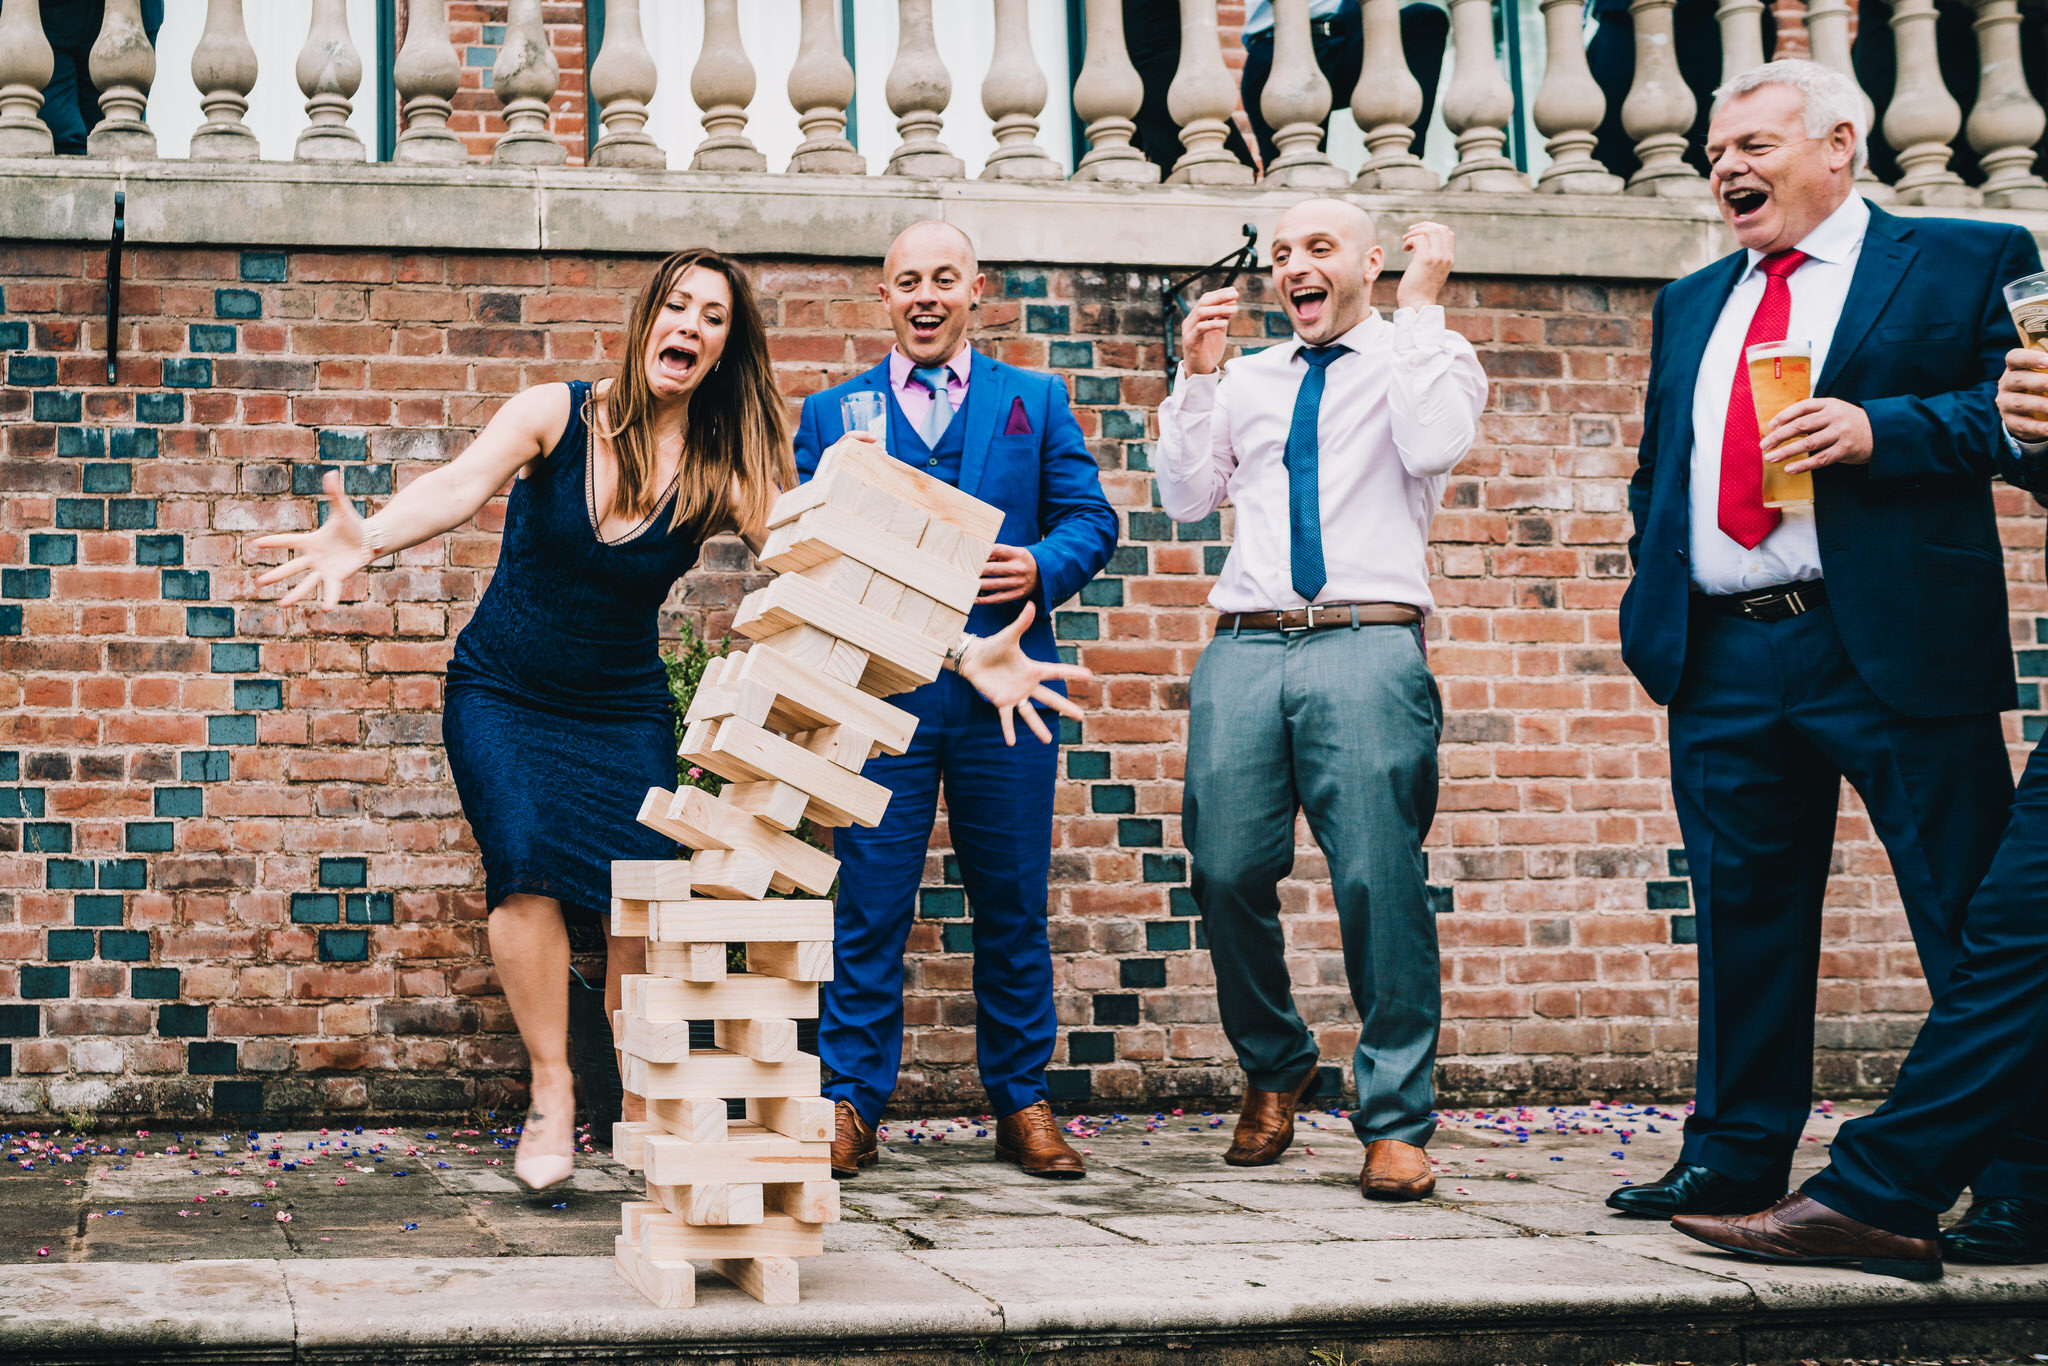 DOCUMENTARY WEDDING PHOTOGRAPHER CAPTURING REAL NATURAL UNPOSED MOMENTS